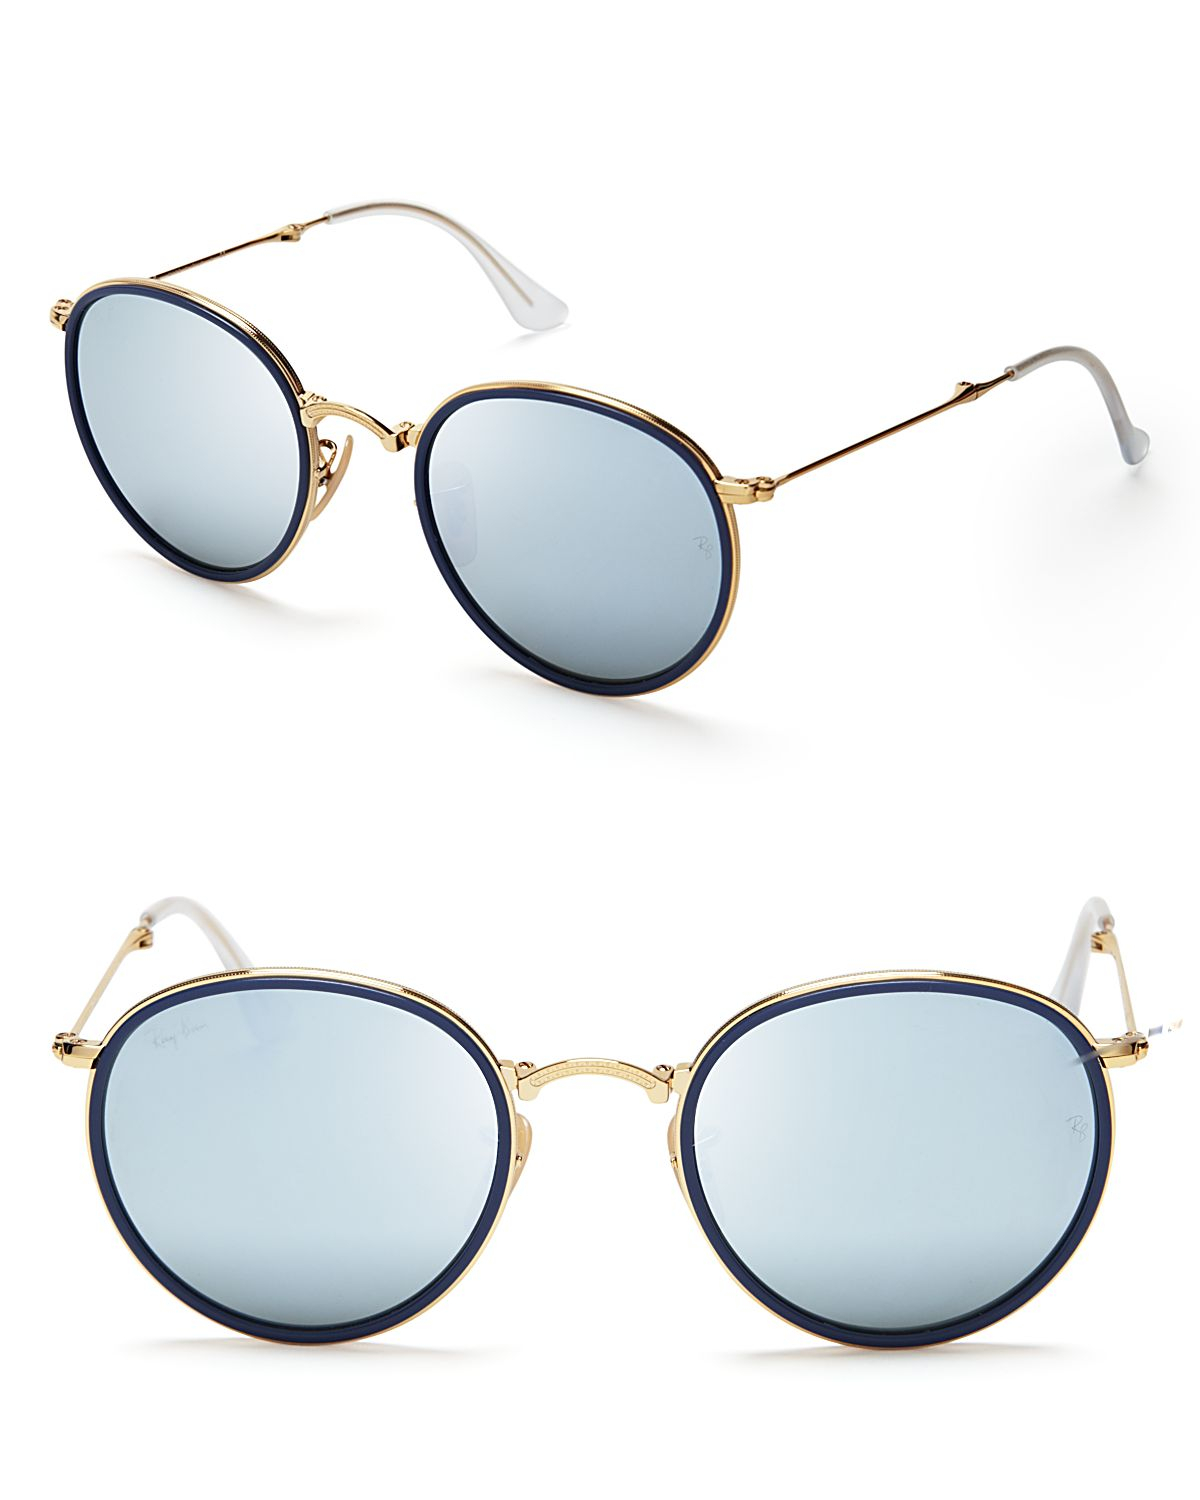 Ray ban foldable round mirrored sunglasses in gold for men for Mirror sunglasses